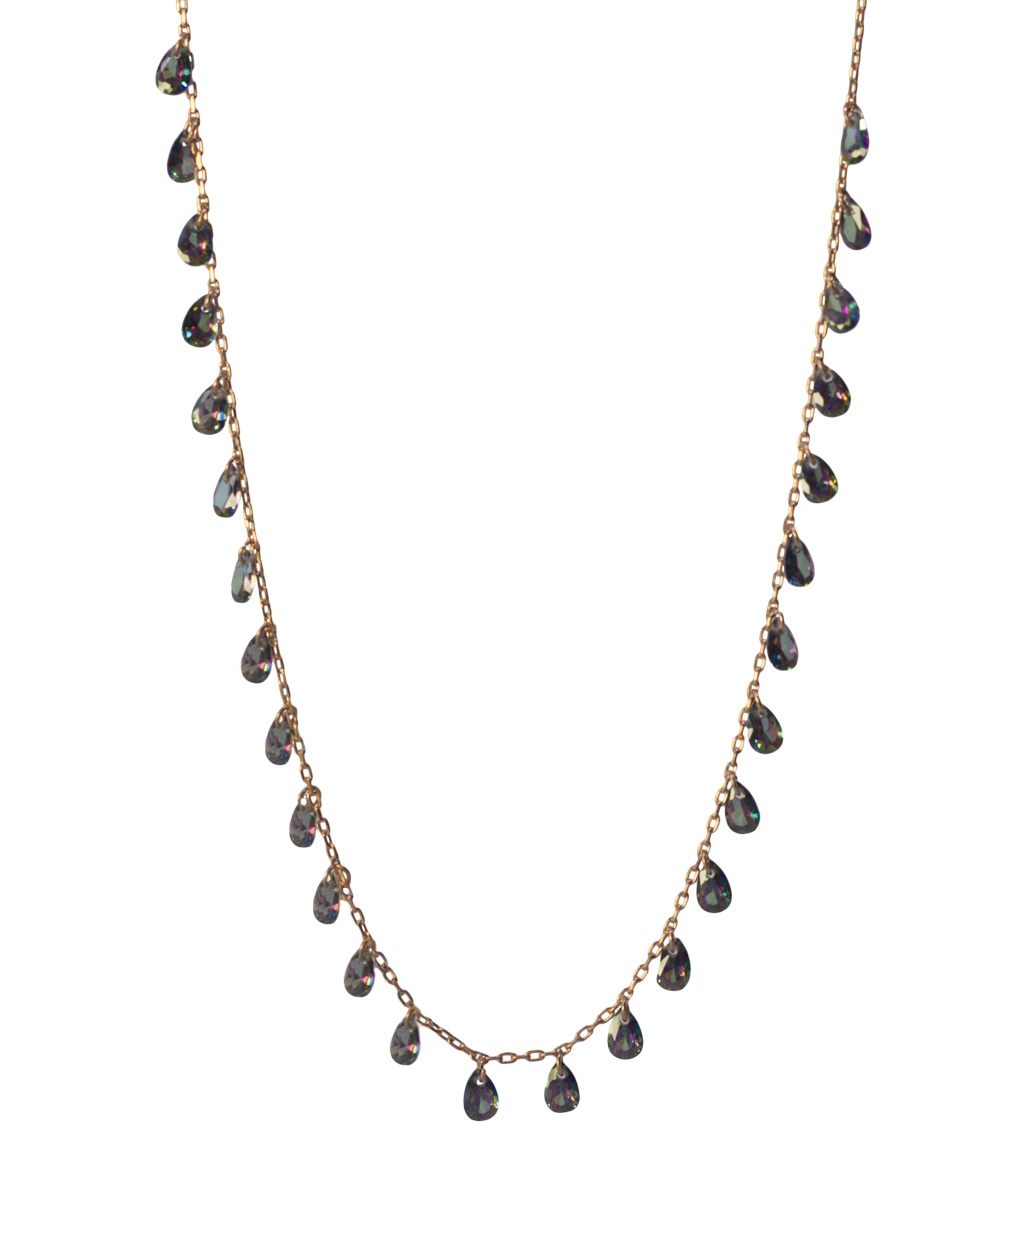 Anthracite Silver Necklace